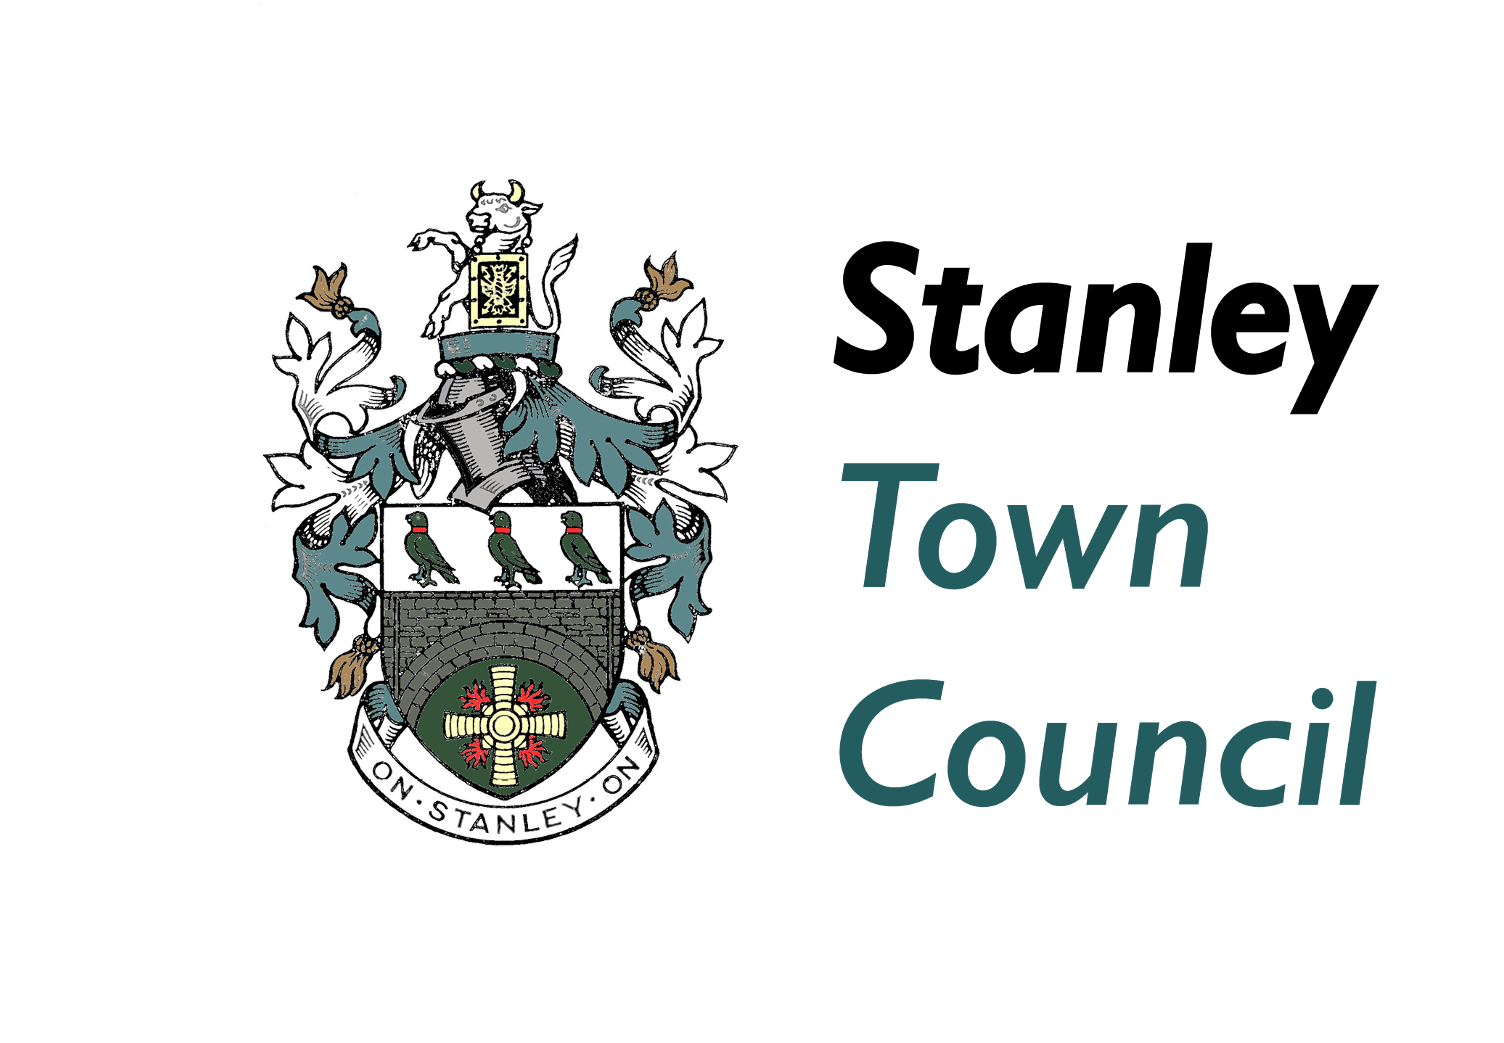 Stanley Town Council